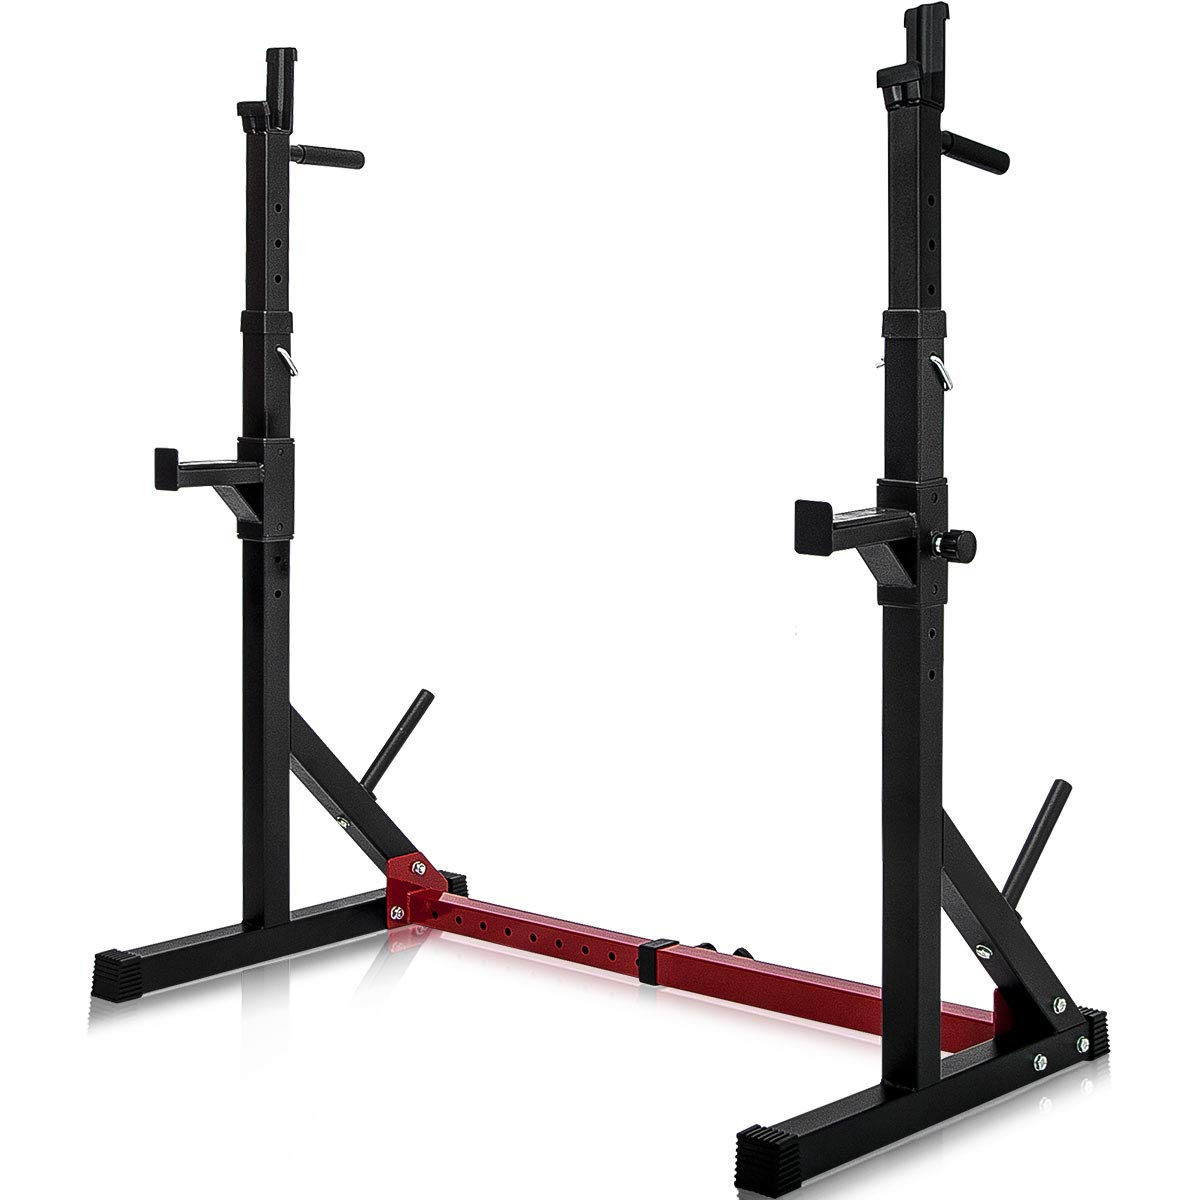 Merax Barbell Rack 550LBS Max Load Adjustable Squat Stand Dipping Station Gym Weight Bench Press Stand (Black/Red) by Merax